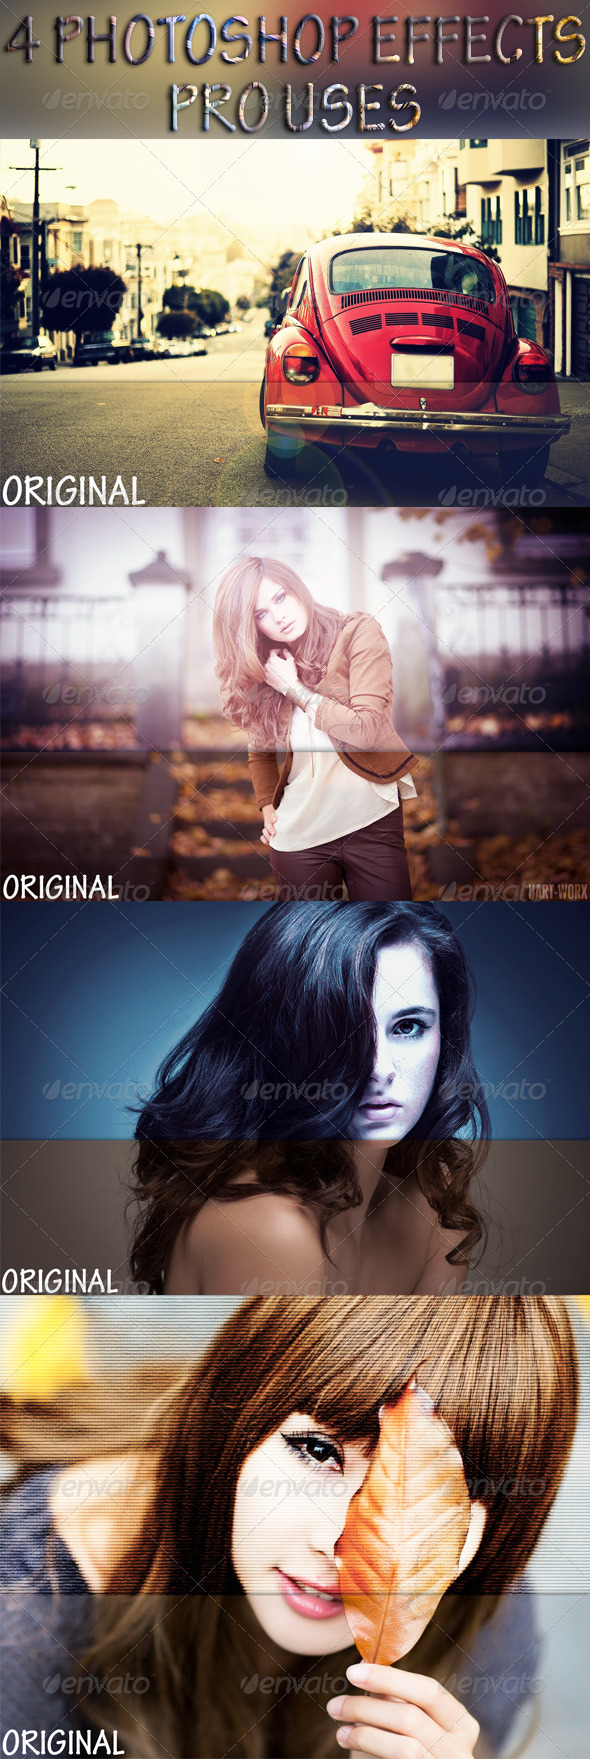 GraphicRiver 4 Photoshop Effects 8088204